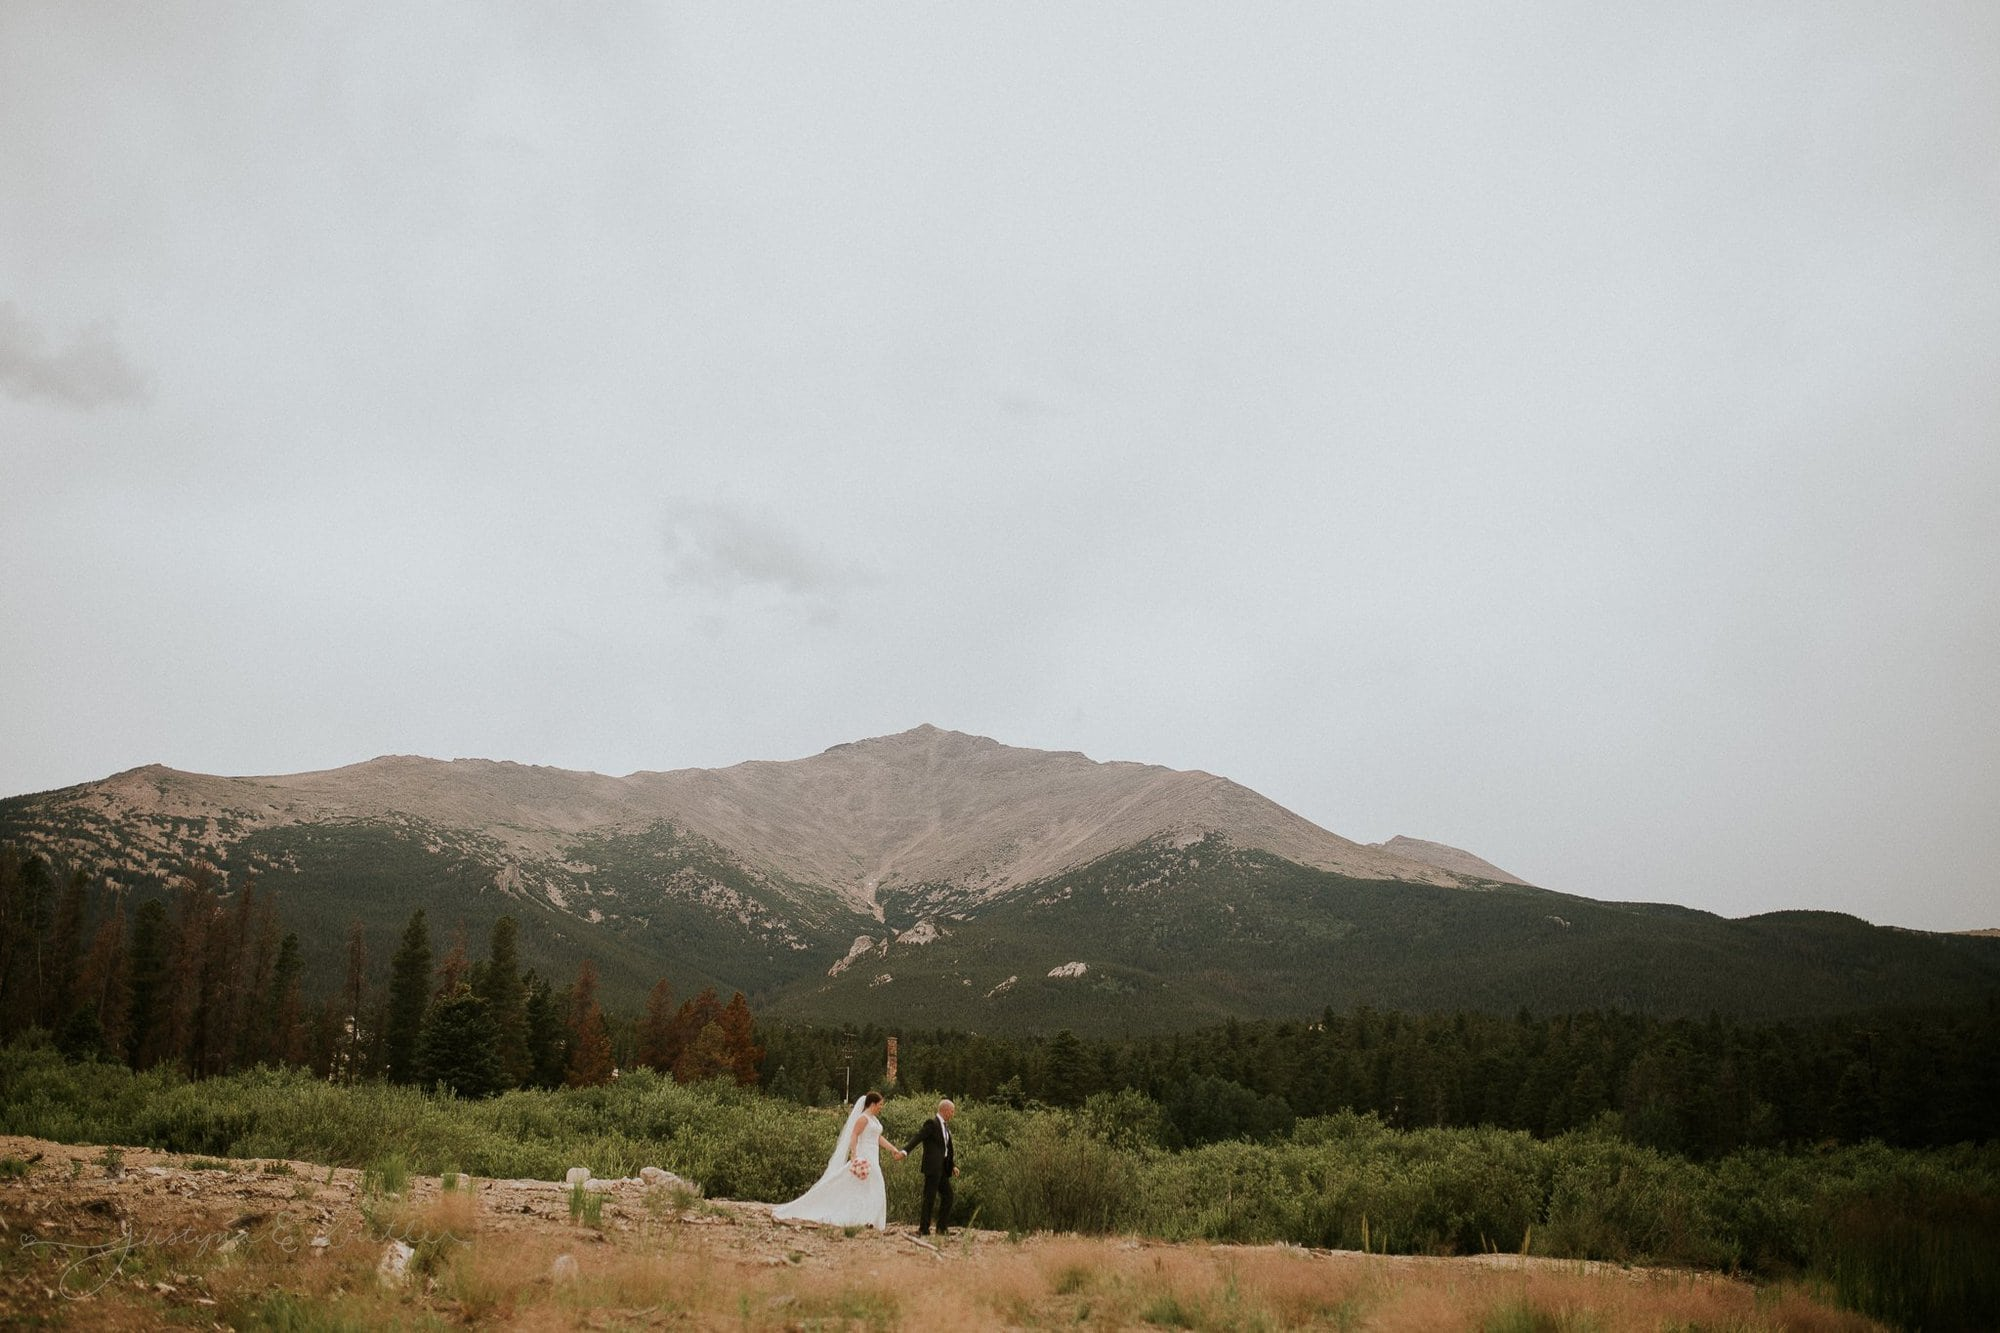 Rocky_Mountain_National_Park_Colorado_Wedding_Photographer_JustynaEButlerPhotography_Allenspark_Colorado_St.Malo_Chapel_The_Chapel_on_the_Rock